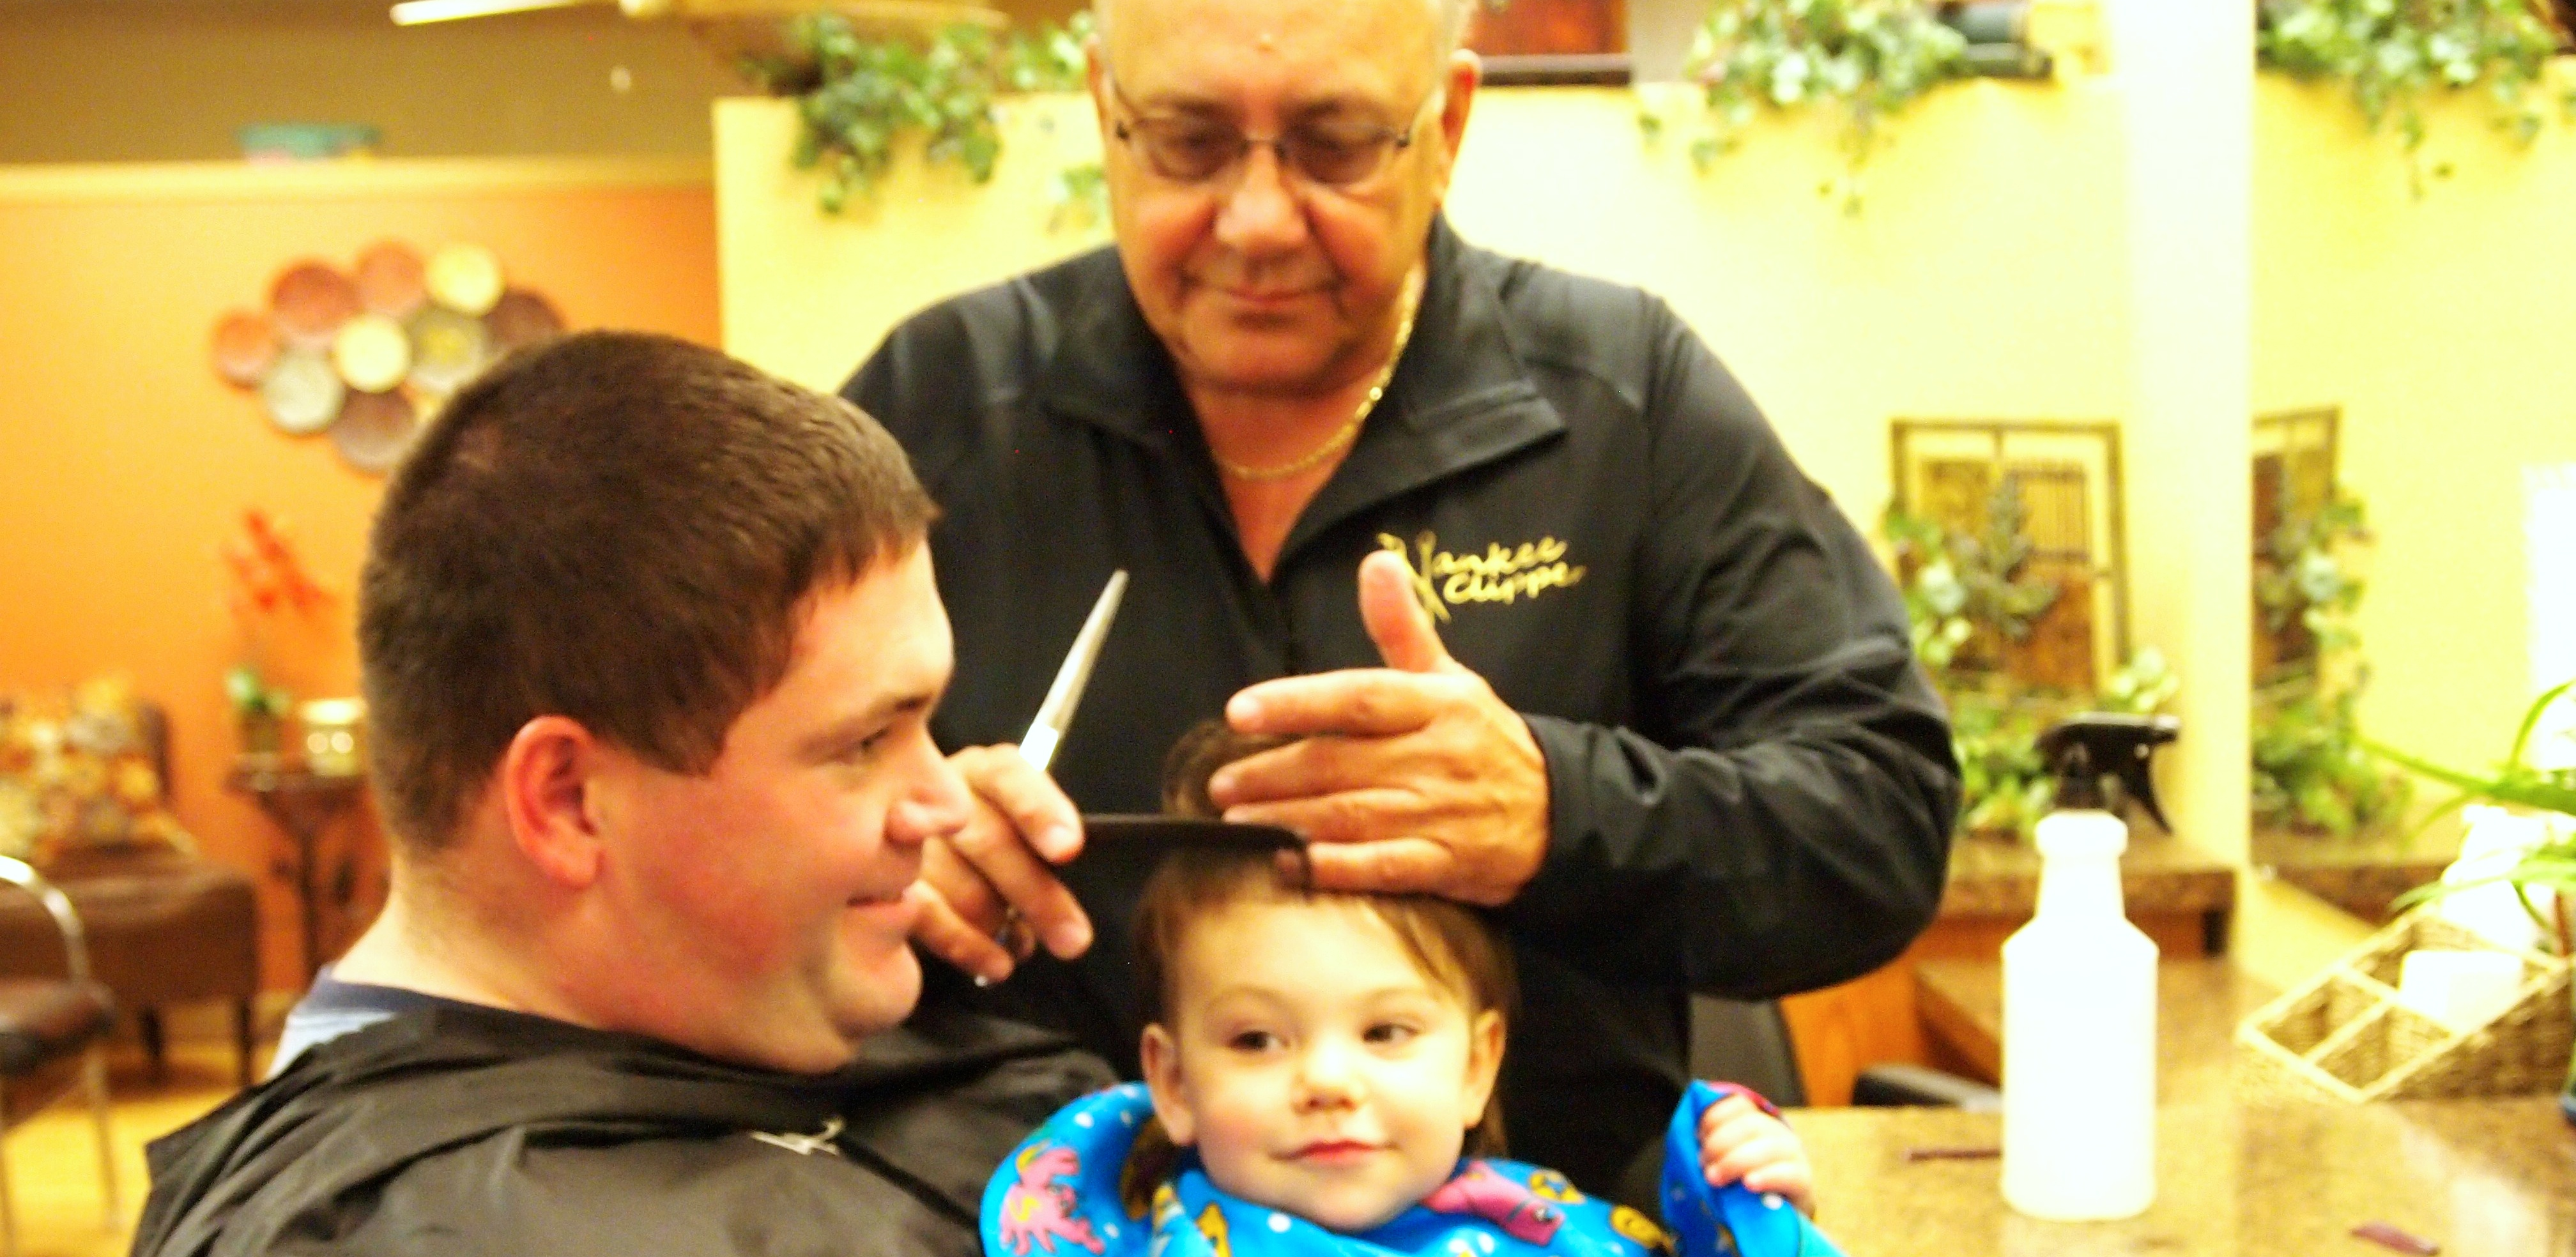 Longtime Barber Looks Back on Five Decades in Biz